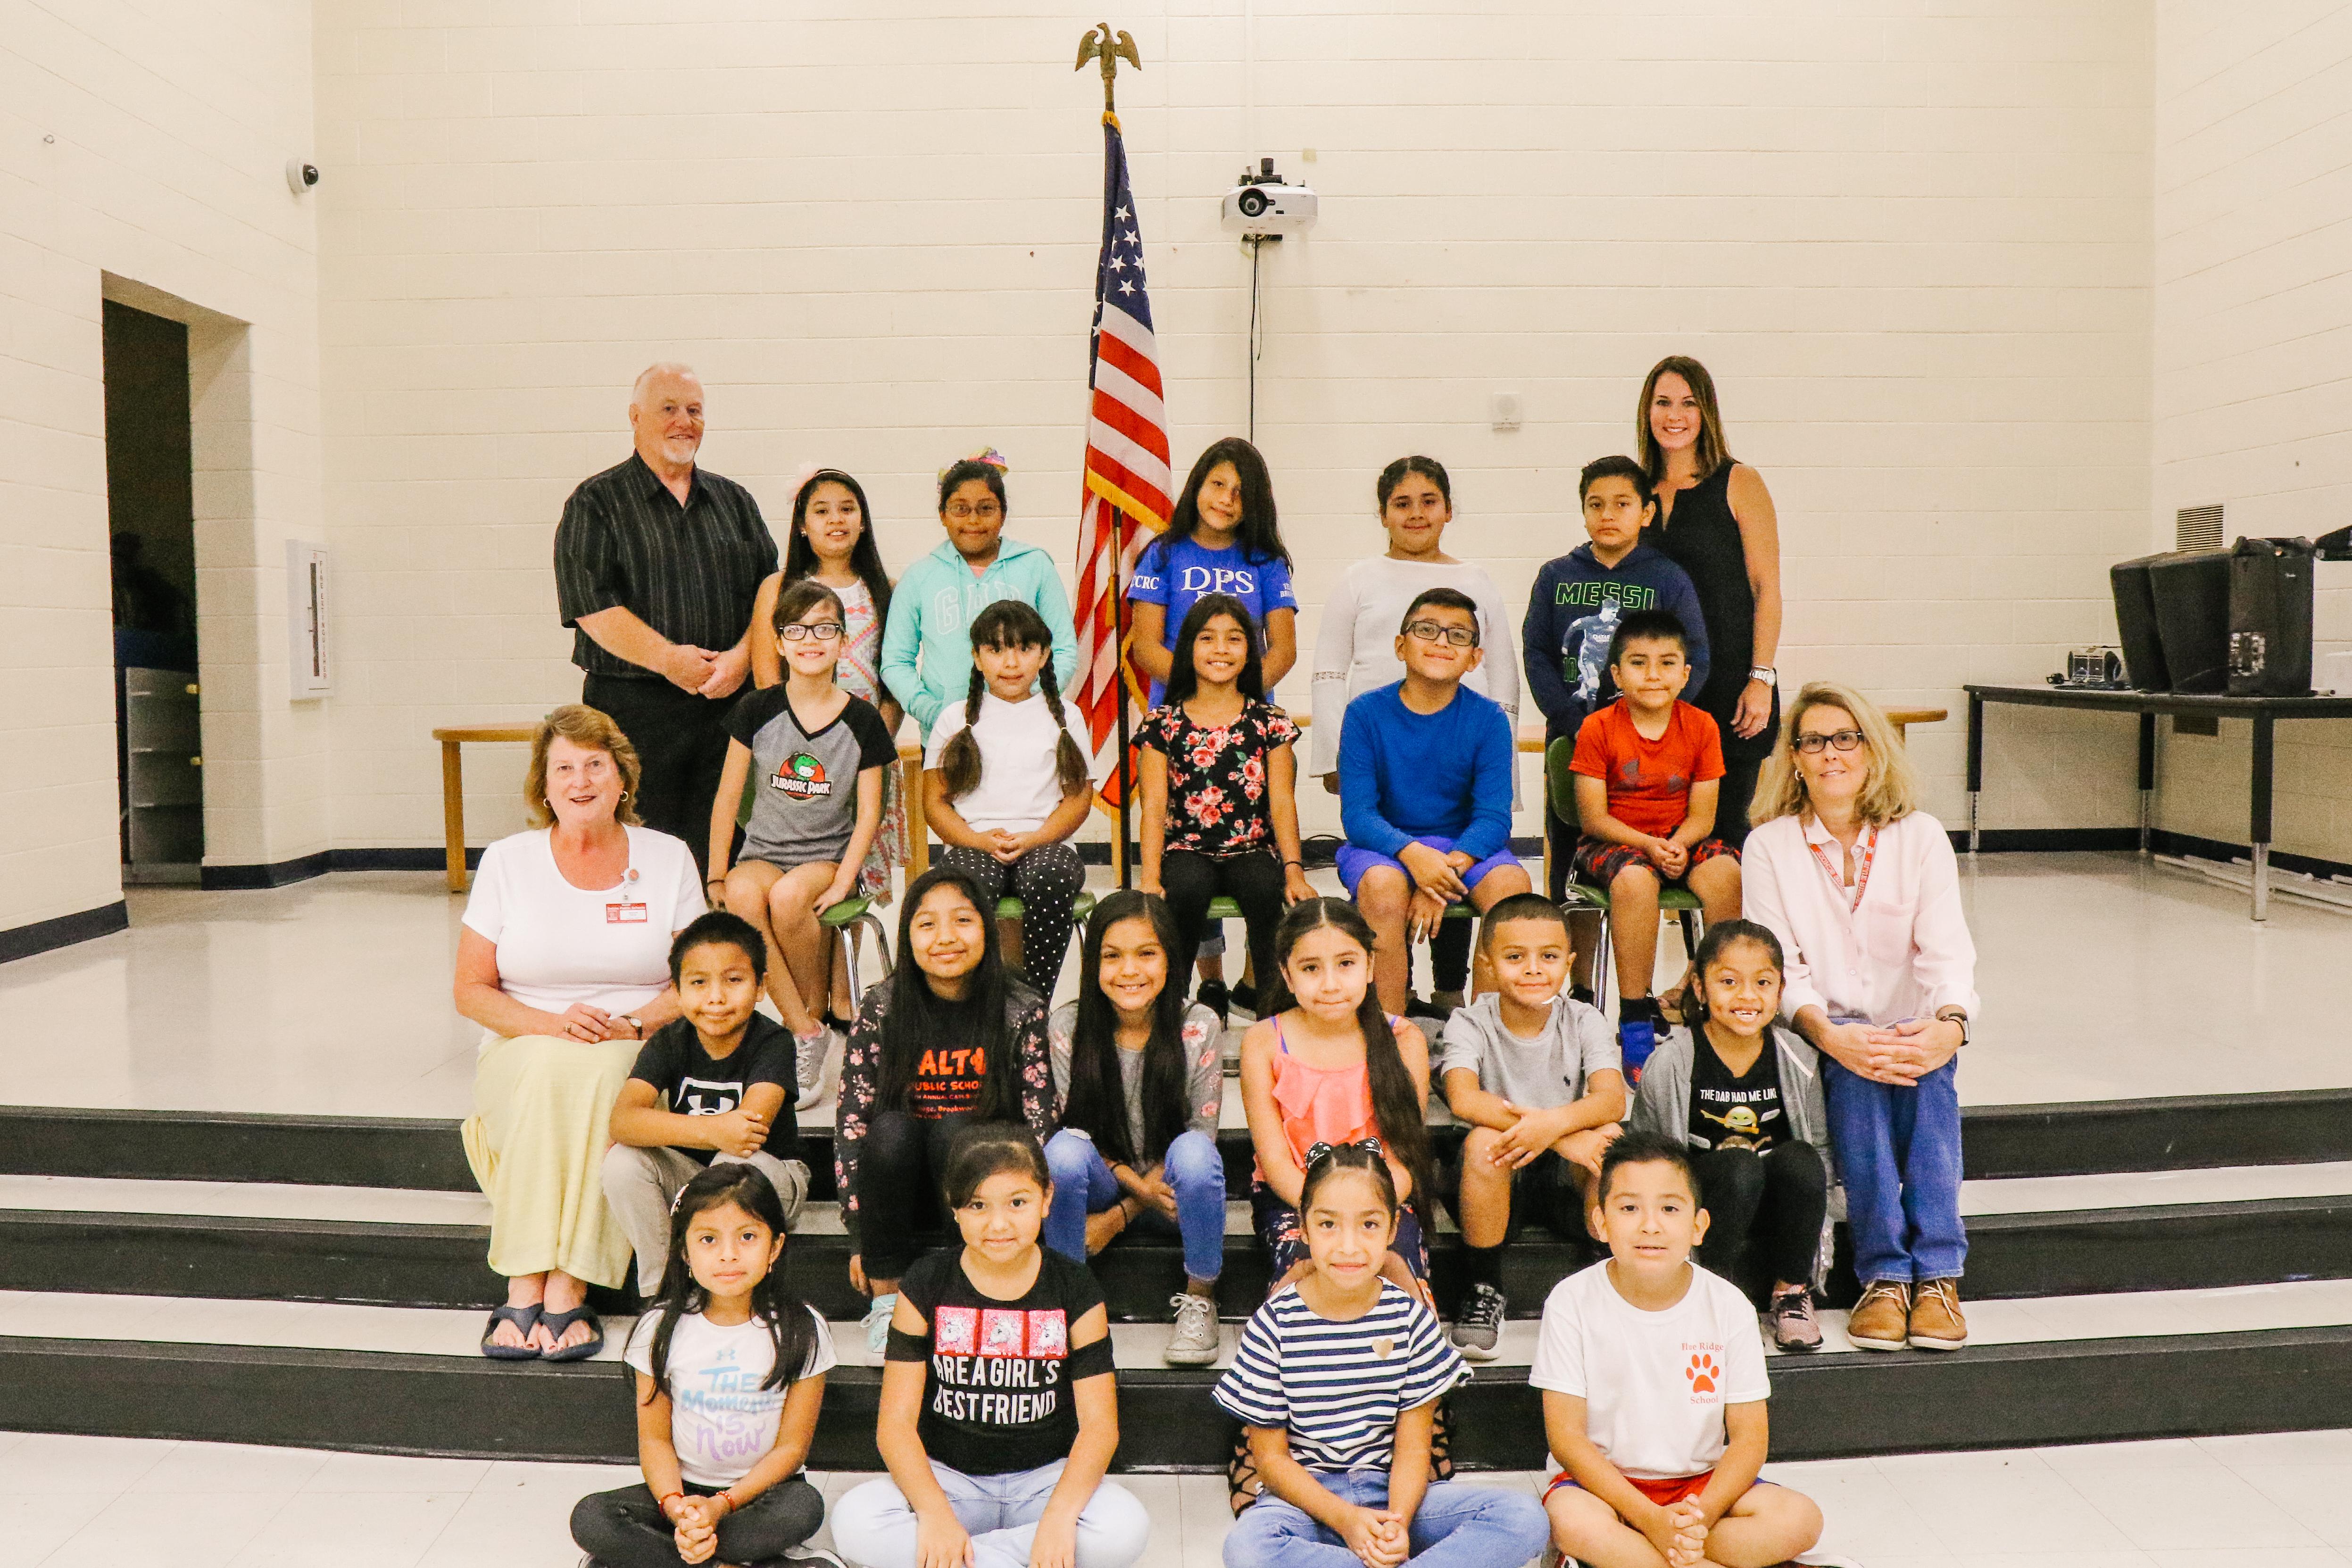 Group Photo of first Blue Ridge Student Council